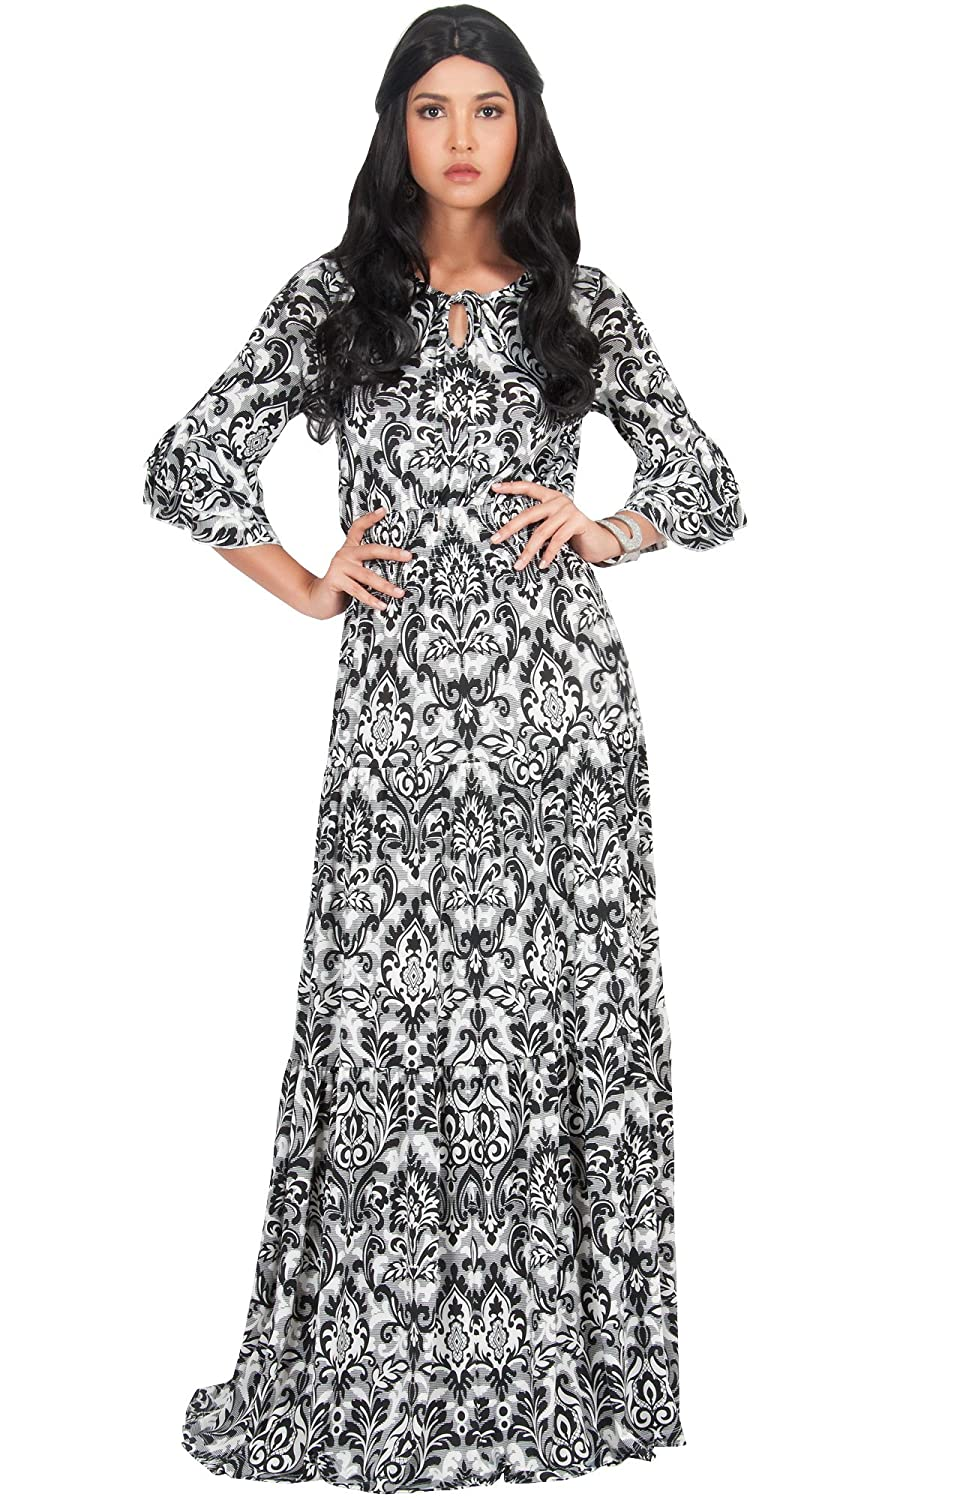 7814ac14f8 PLUS SIZE - Flattering and slimming plus size maxi dresses and gowns  plus  sized full length clothing for larger ladies. STYLE - Loose fitting long  sleeved ...